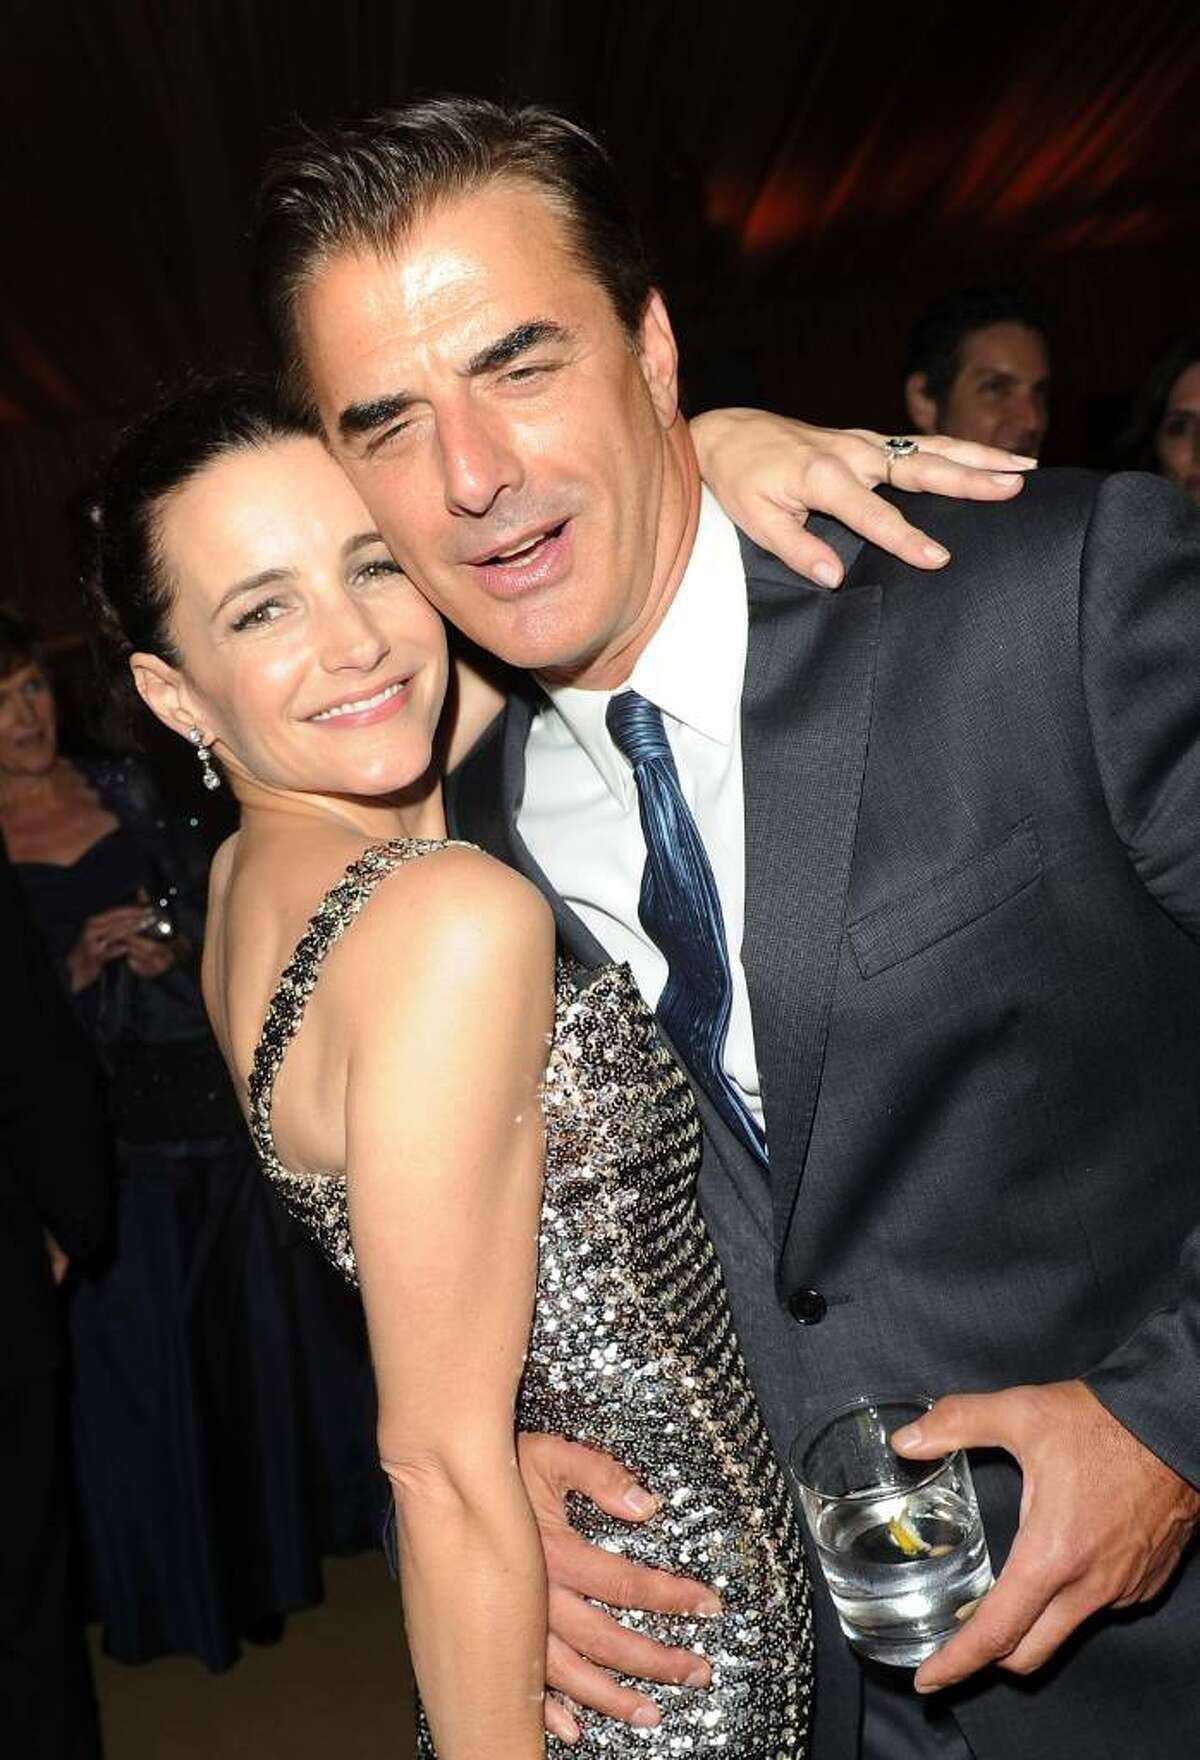 """NEW YORK - MAY 24: Actress Kristin Davis and actor Chris Noth attend the after party following the premiere of """"Sex and the City 2"""" at Lincoln Center for the Performing Arts on May 24, 2010 in New York City. (Photo by Stephen Lovekin/Getty Images) *** Local Caption *** Kristin Davis;Chris Noth"""